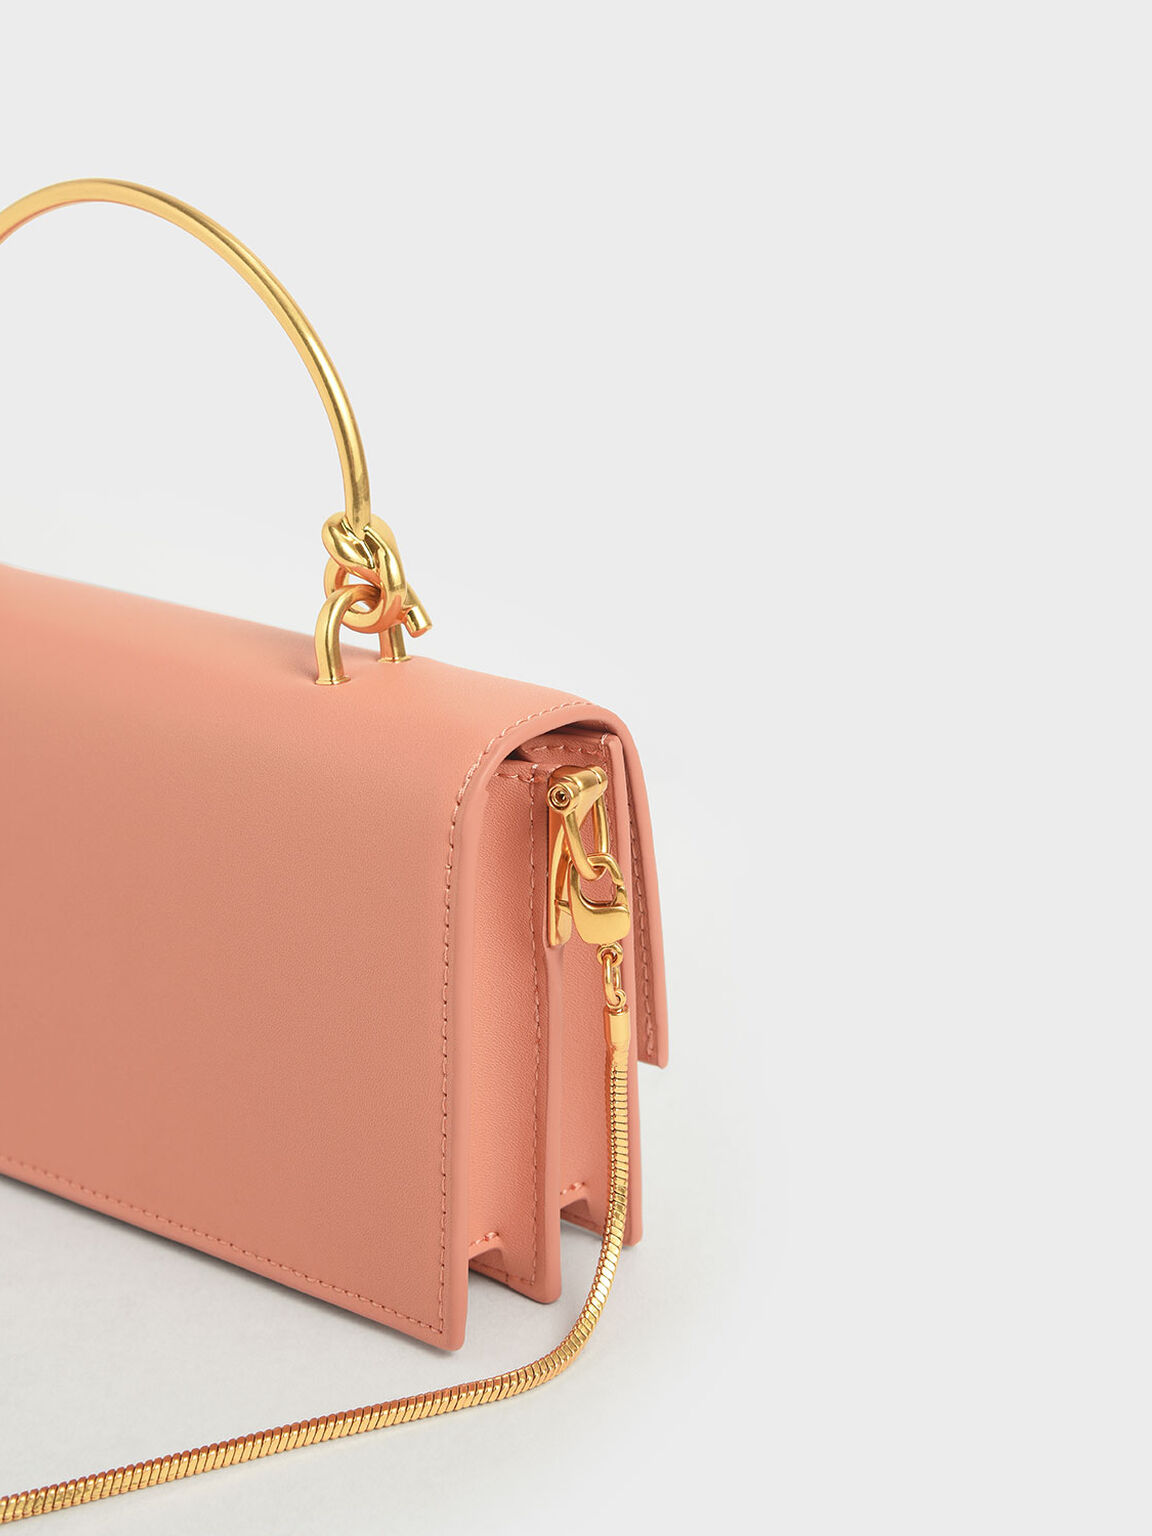 Metal Top Handle Long Wallet, Peach, hi-res